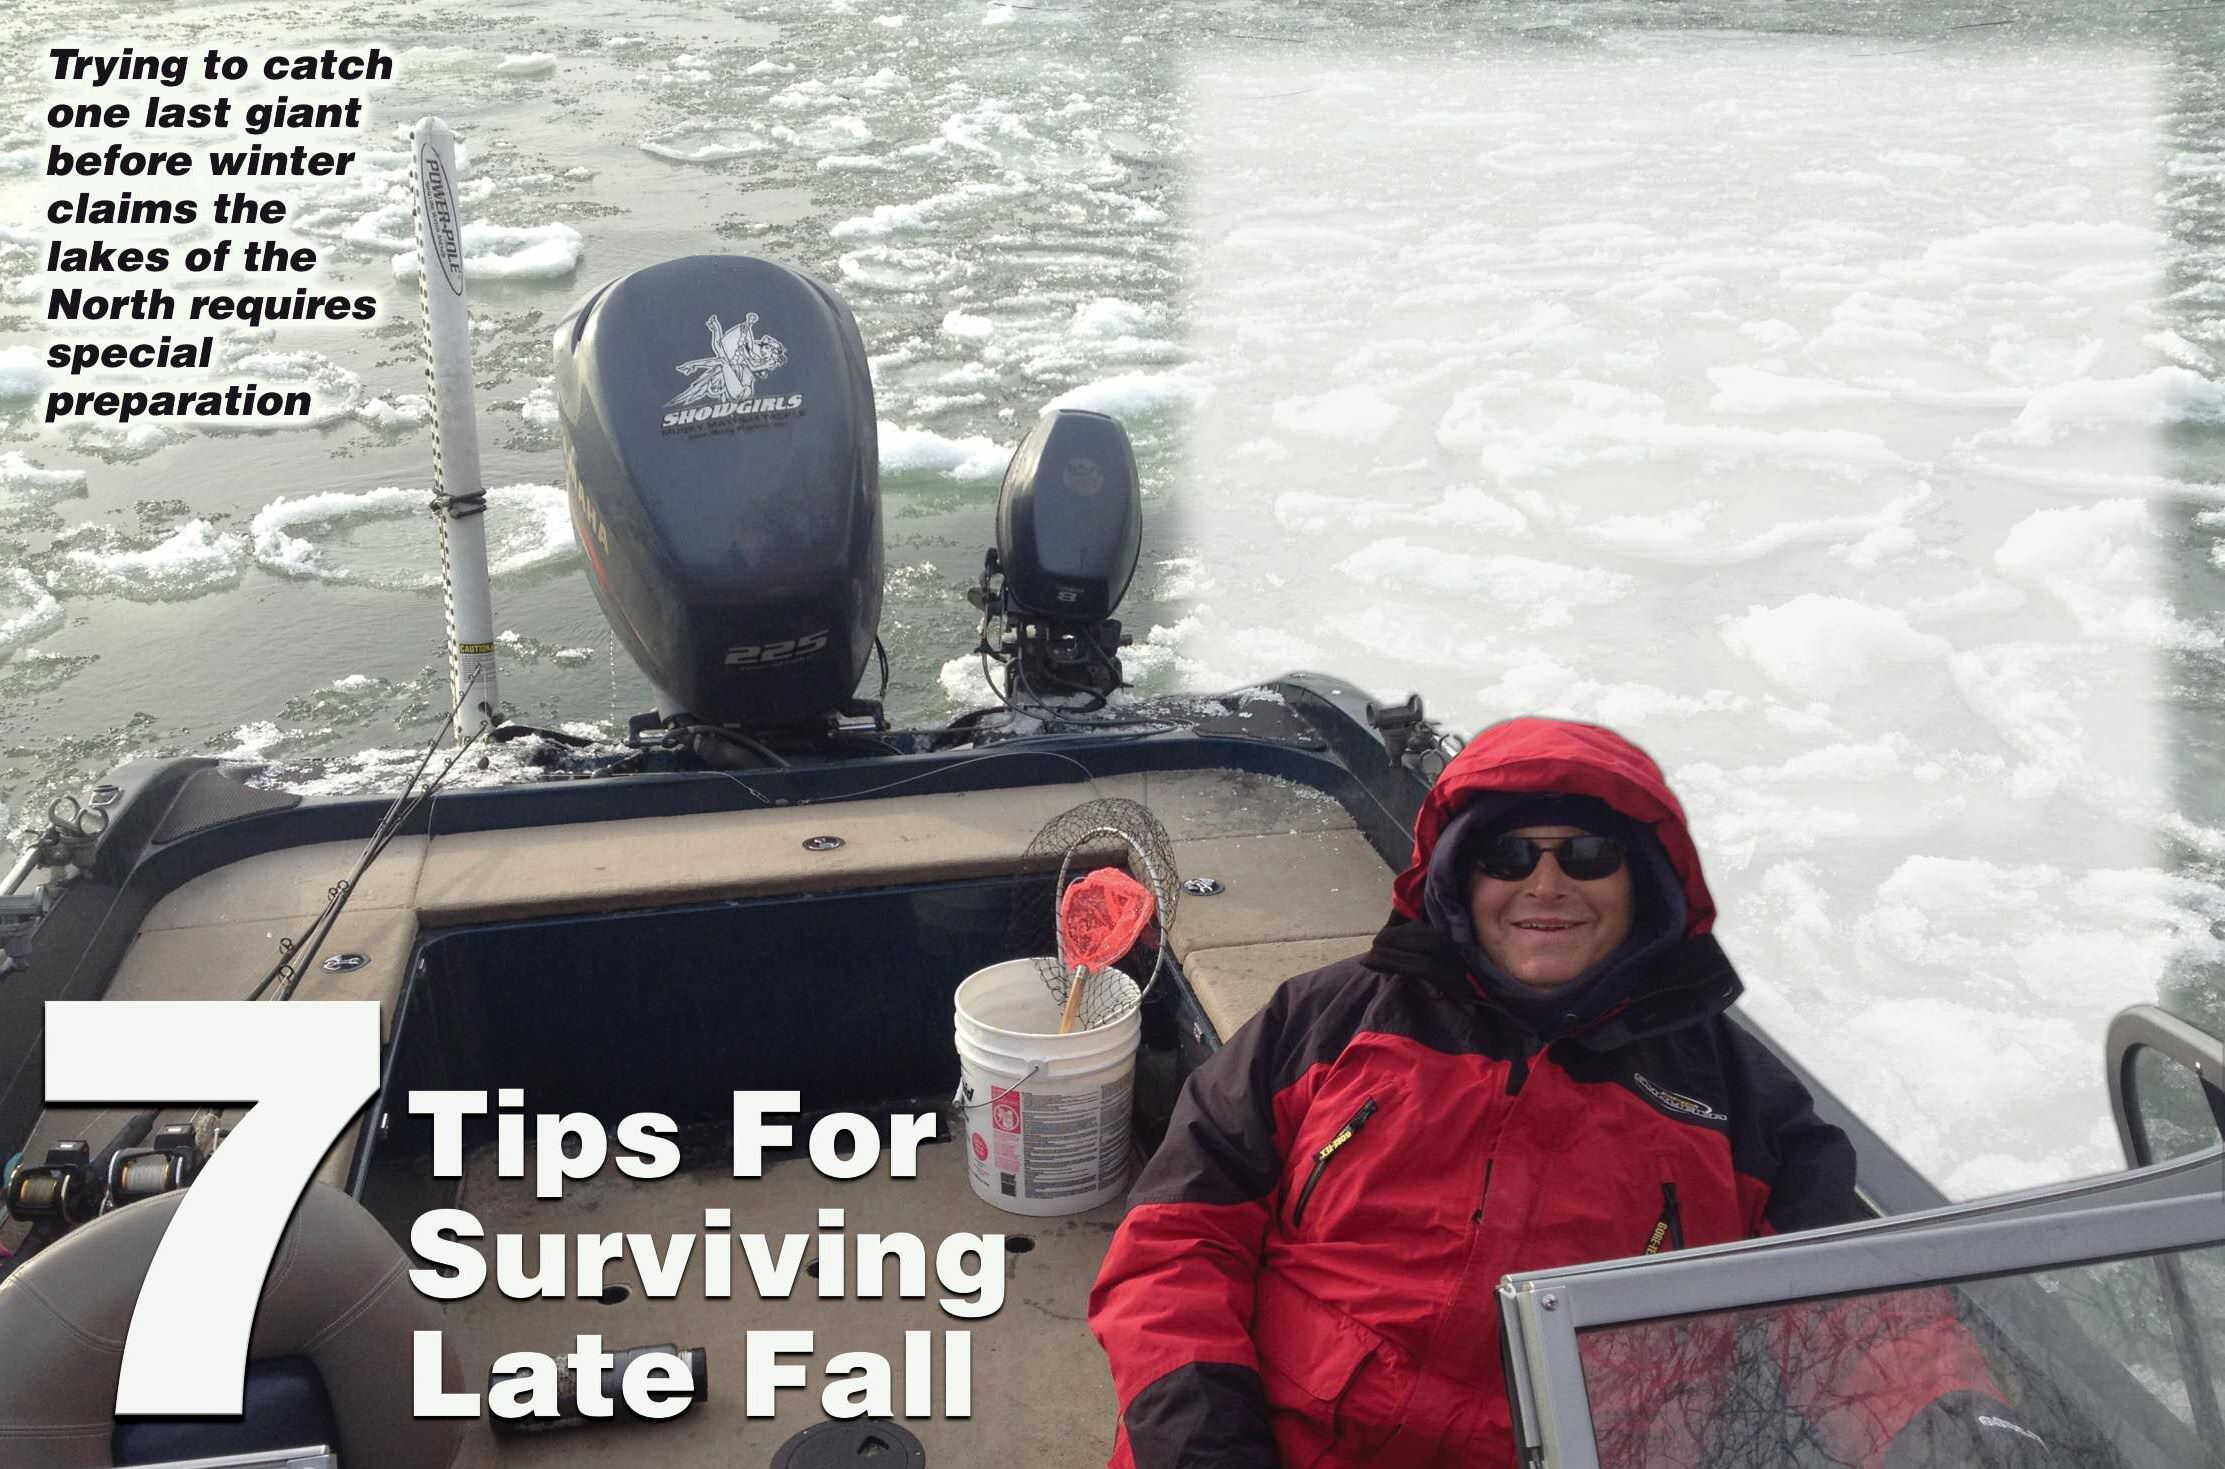 7 Tips For Surviving Late Fall